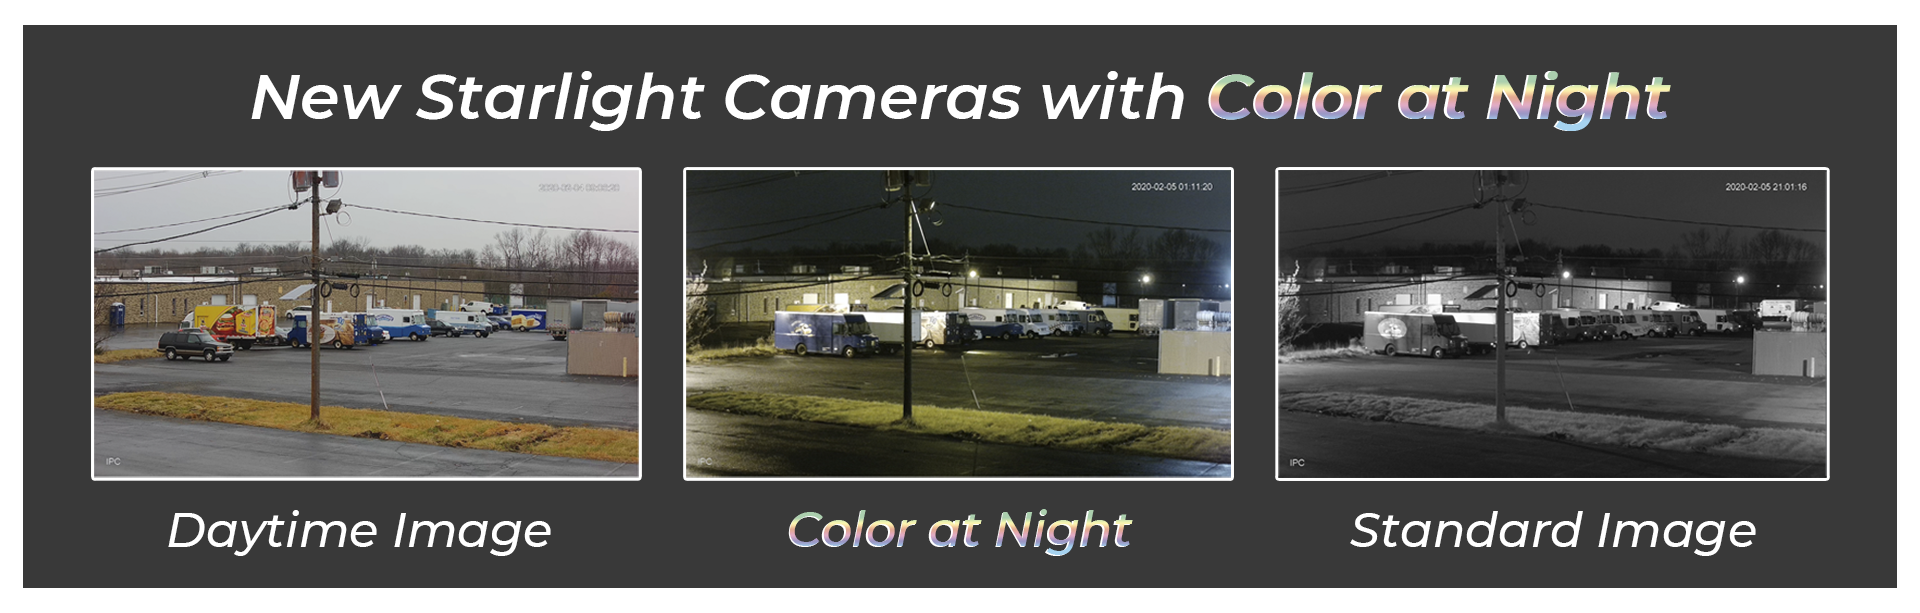 color-at-night-option-3-.png